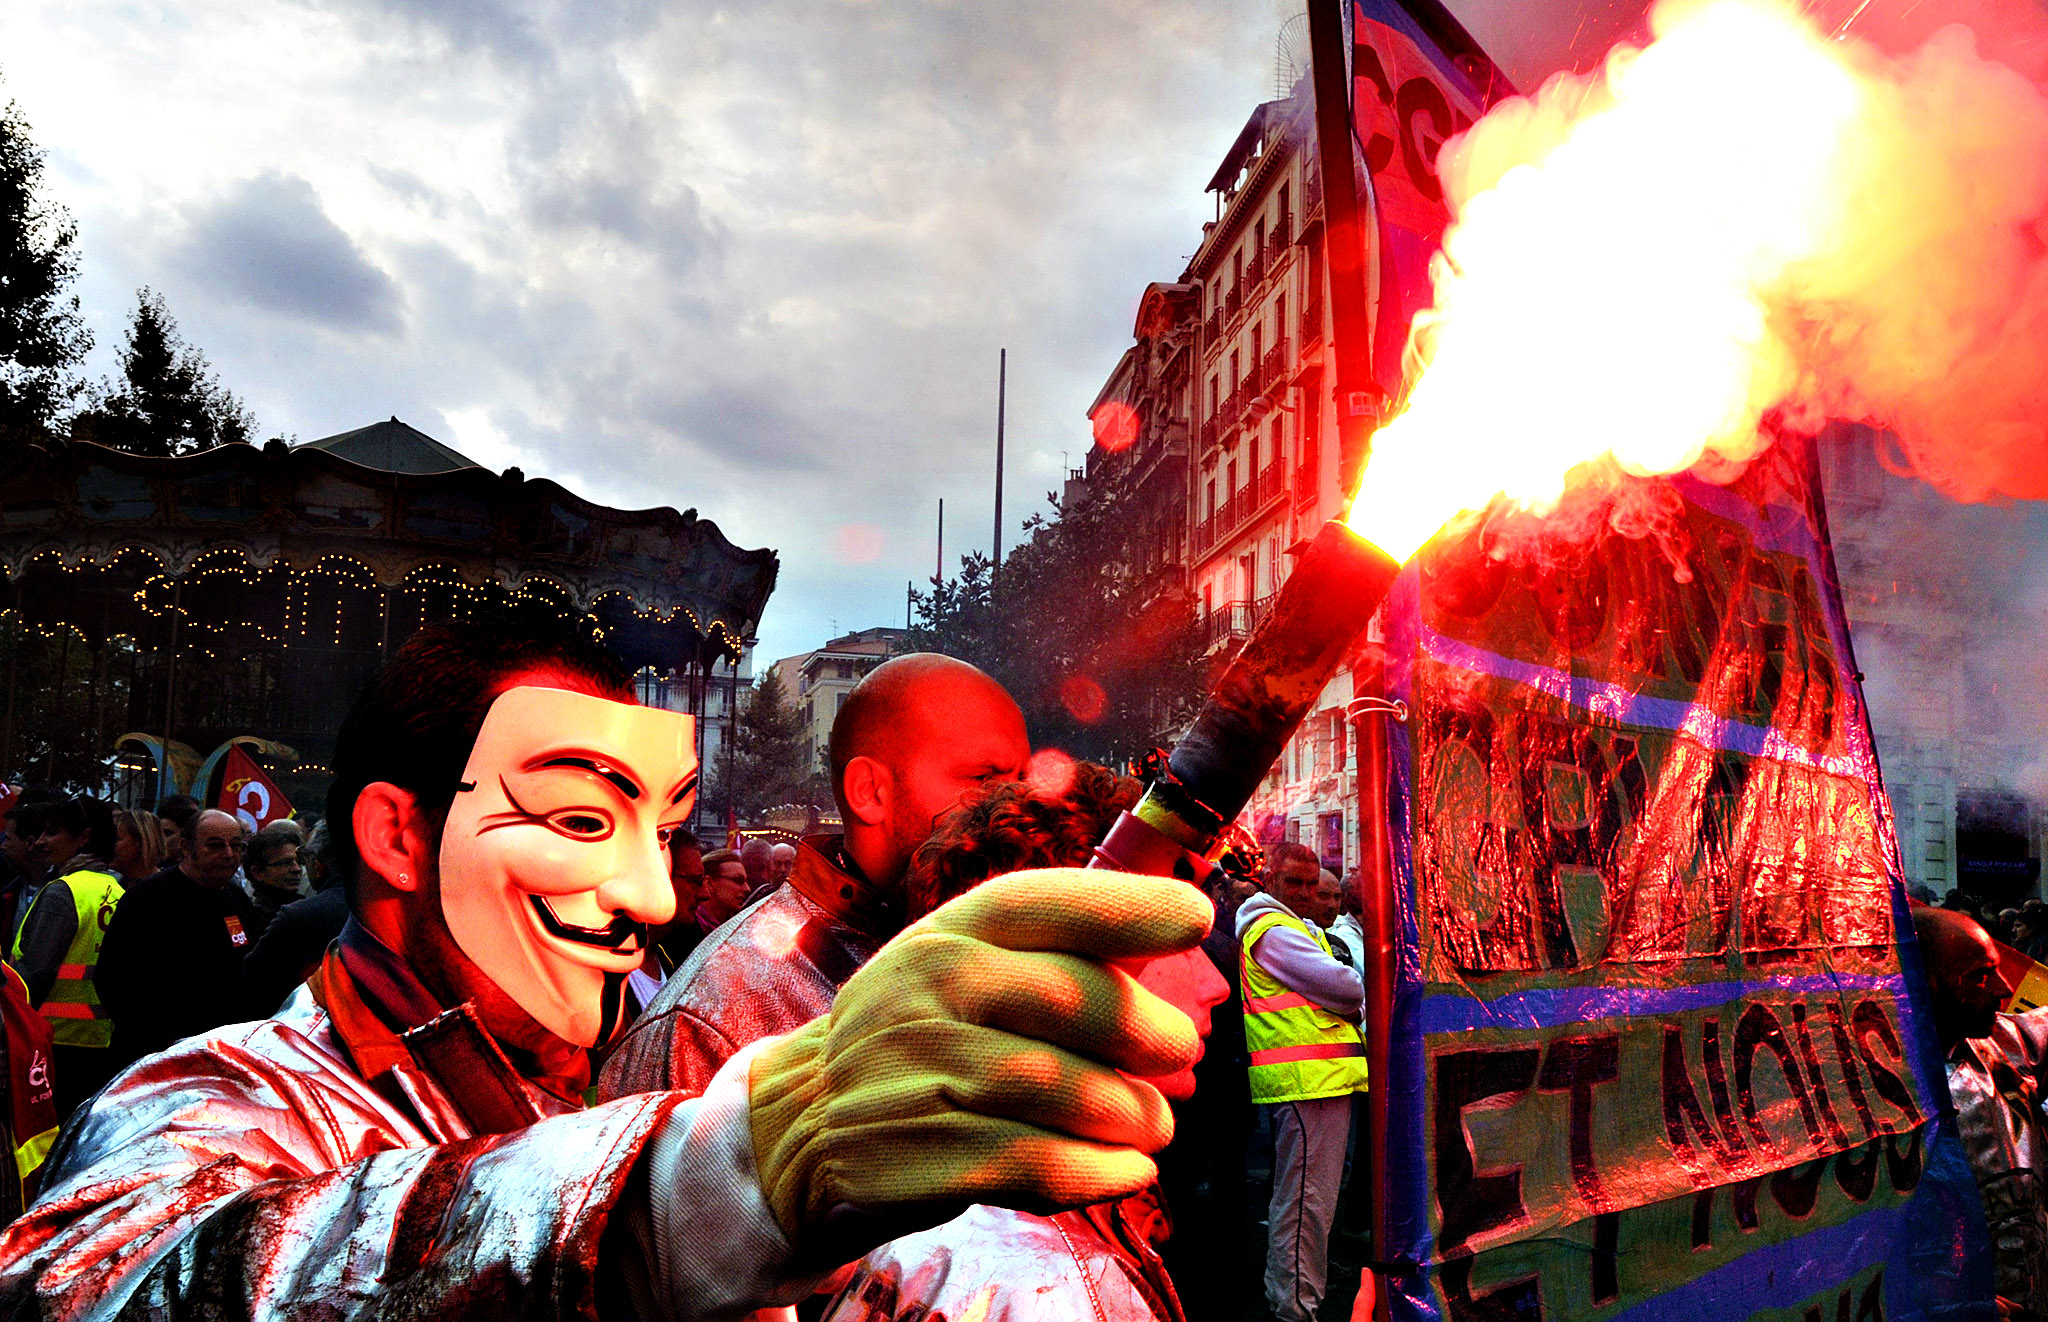 A man wearing a mask burns a flare on October 15, 2013 in Marseille, southern France, as he takes part in a protest called by French workers' unions (UNEF, UNL, CGT, FSU and FO), against the government's plans to reform France's retirement system.